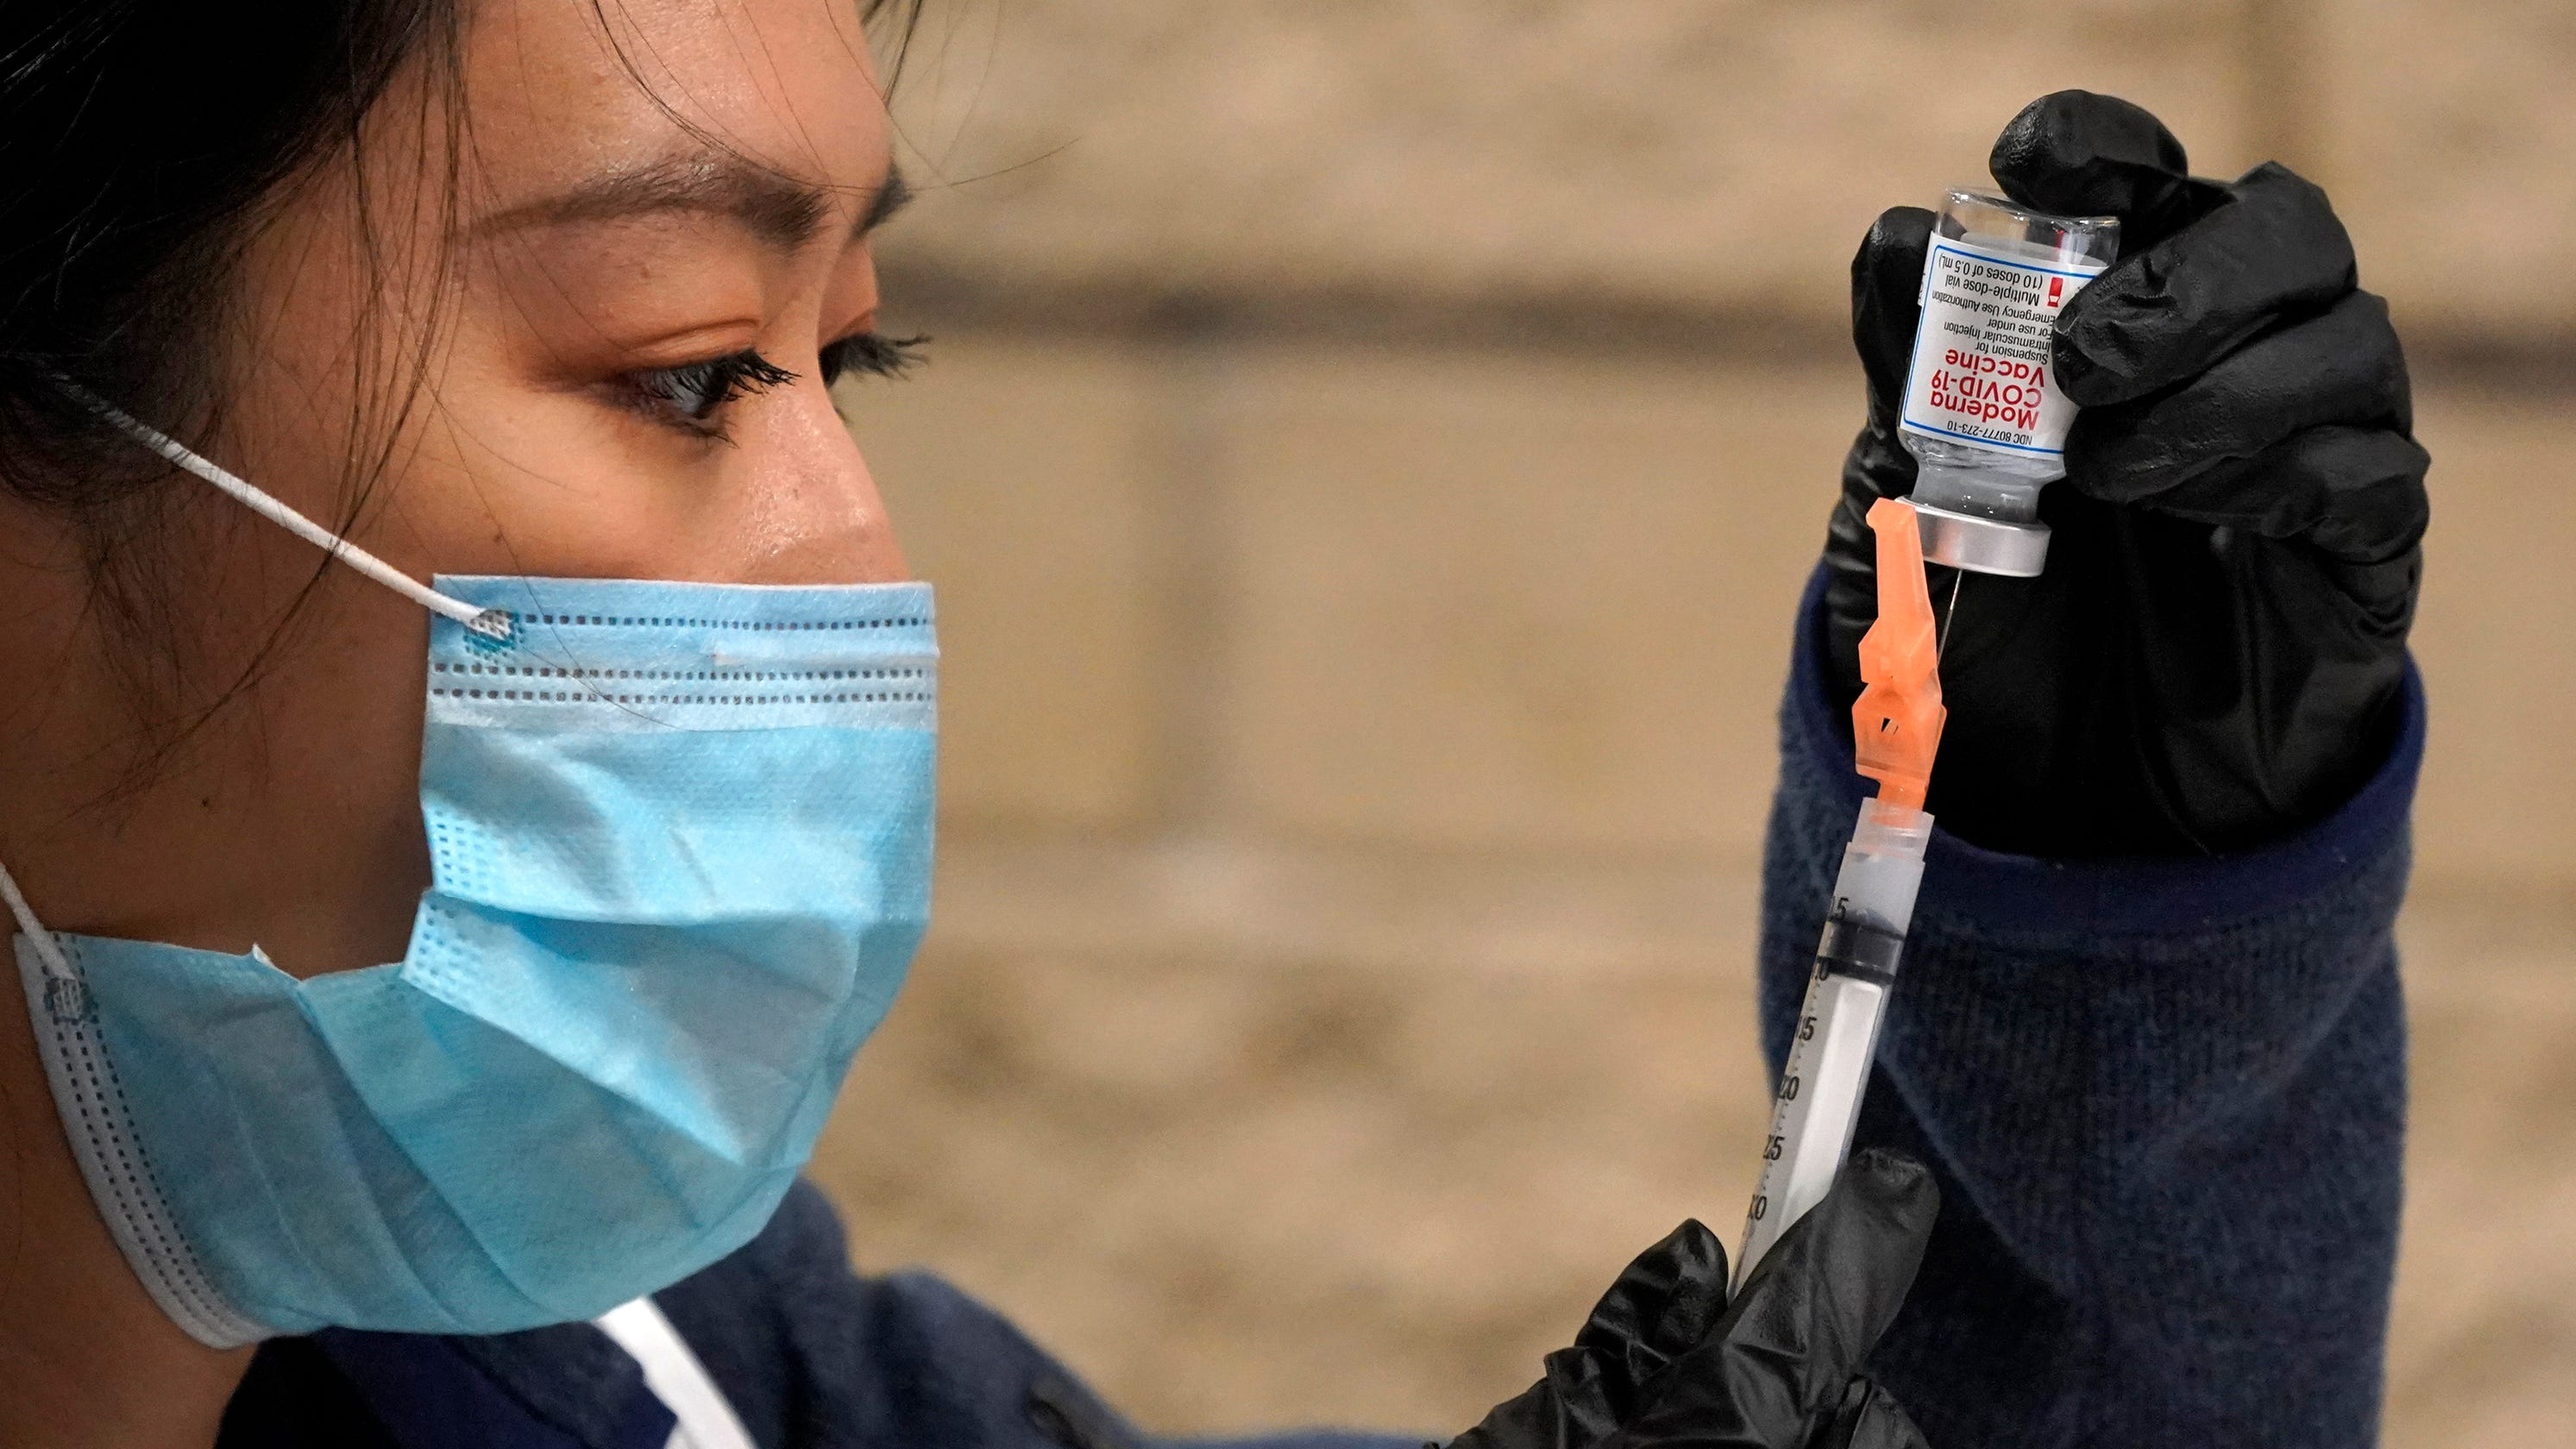 Freezer failure leads to middle-of-the-night vaccination rush; CDC mandates masks on public transit. Latest COVID-19 updates.